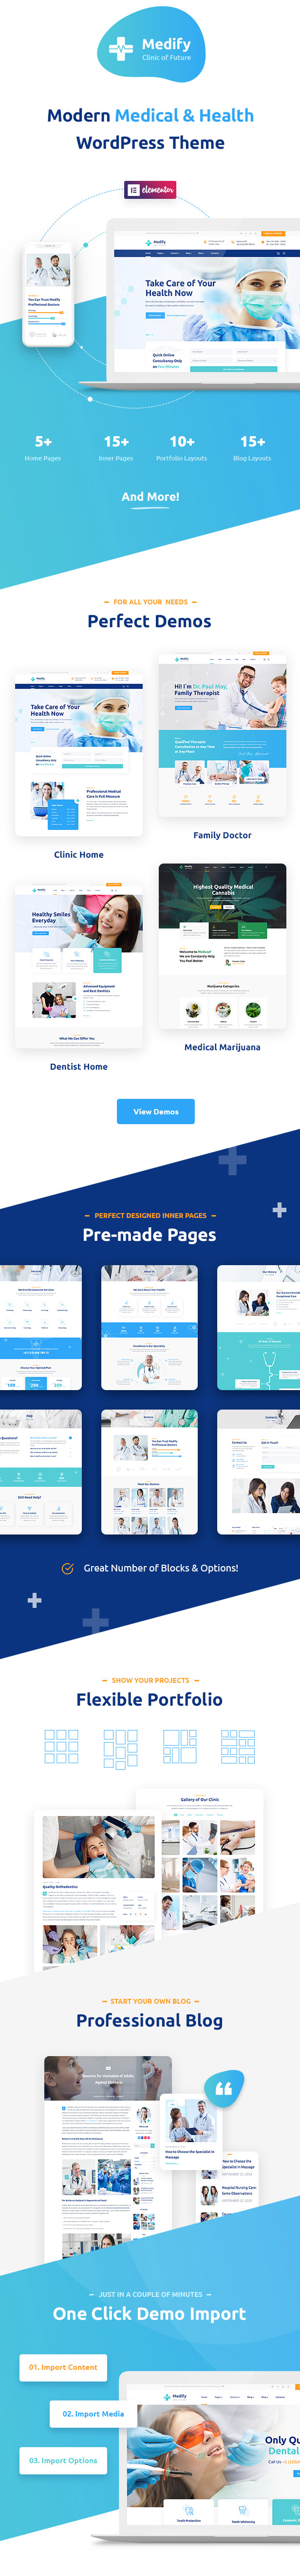 Medify - Health & Clinic WordPress Theme - 1